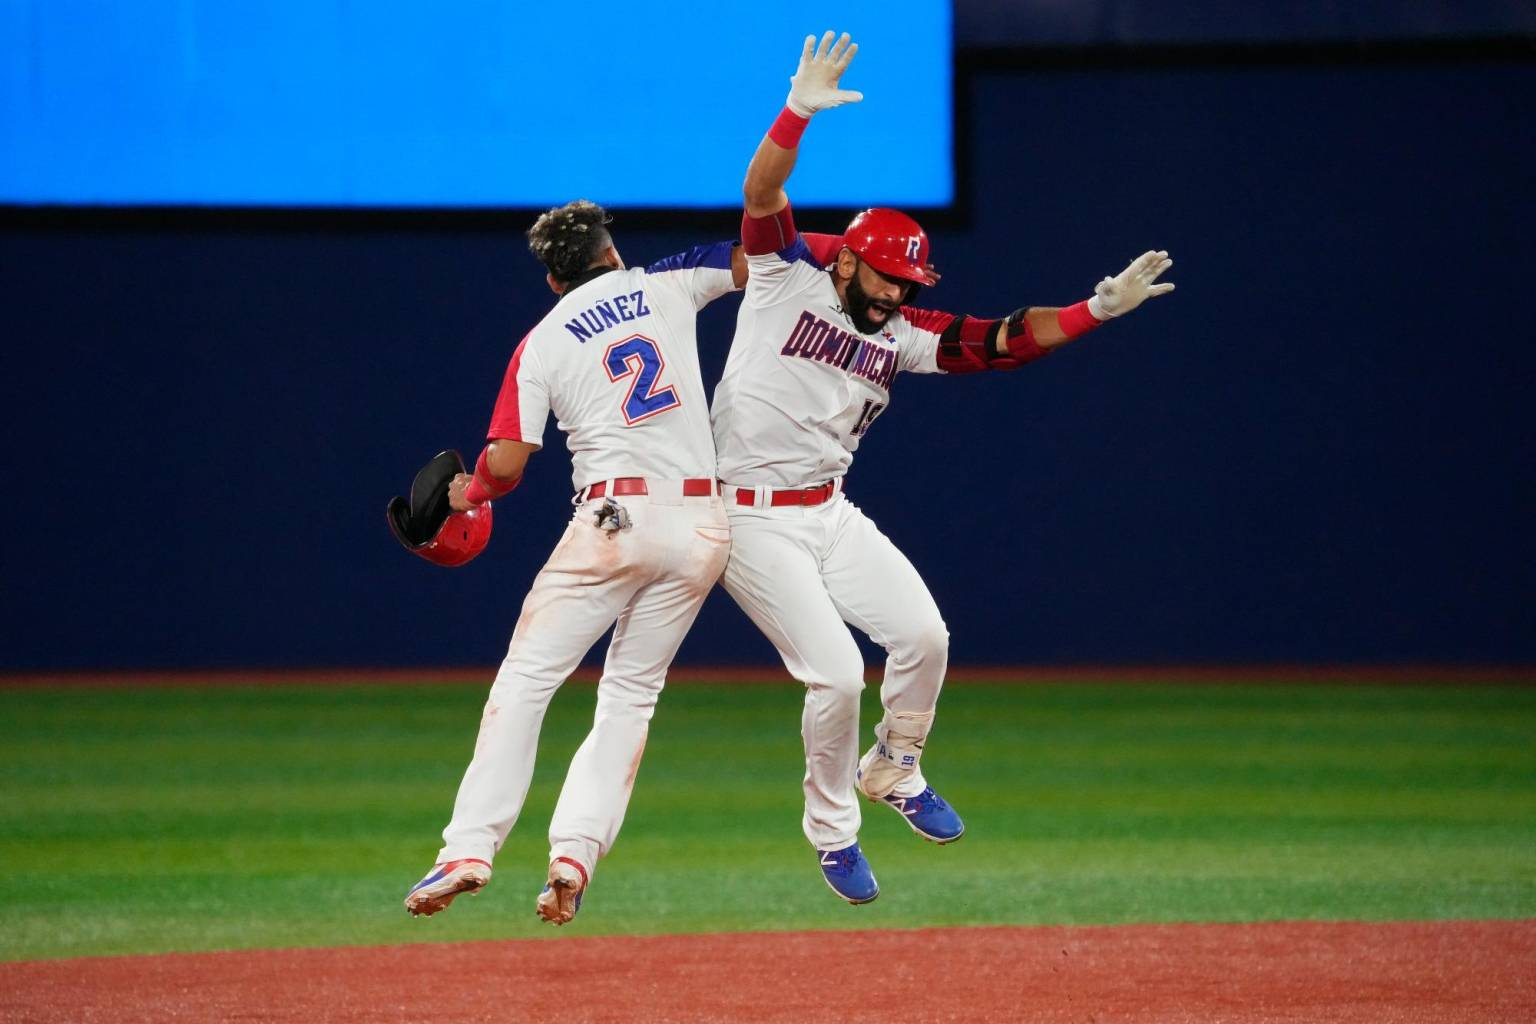 The Dominican Republic has twice challenged the United States in the Olympics